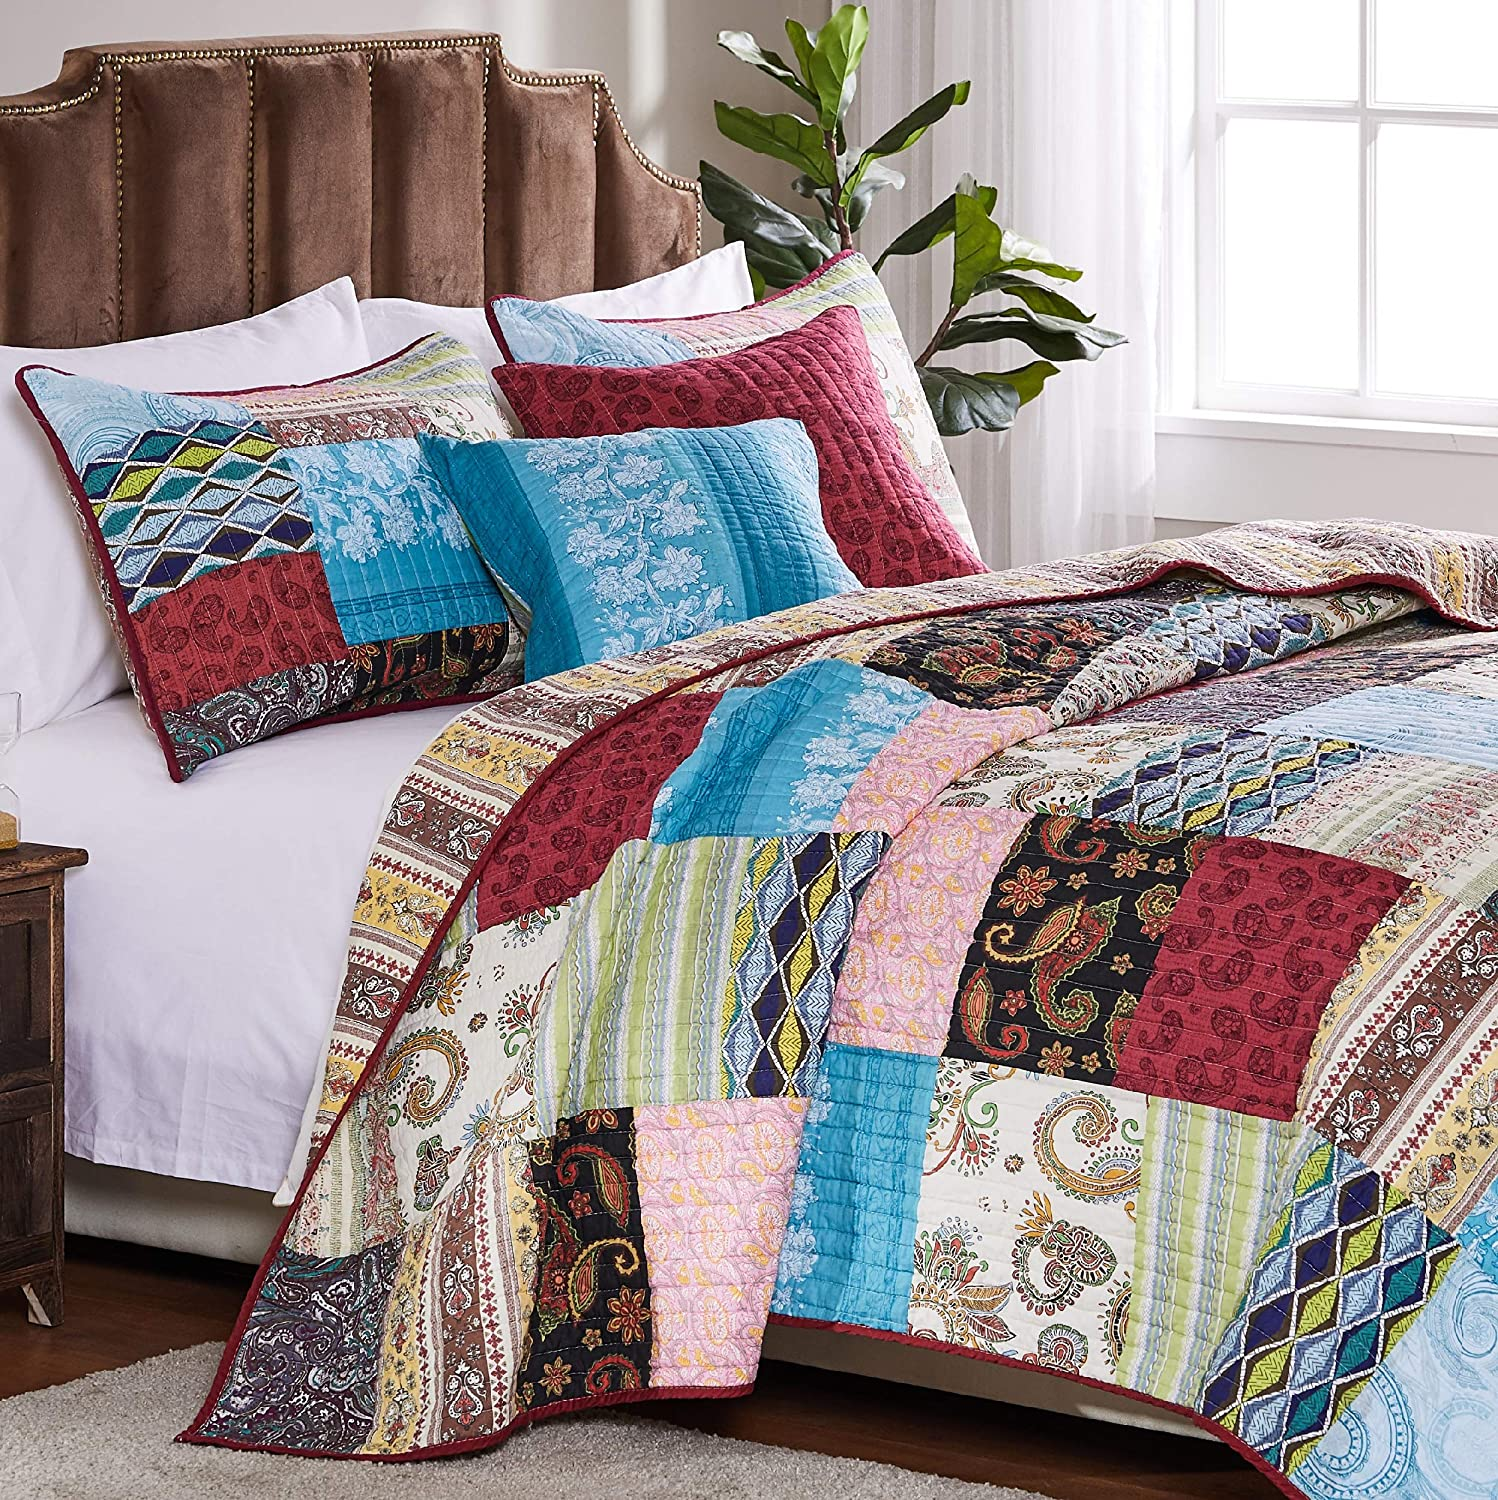 Greenland Home Bohemian Dream Quilt Set, 5-Piece King/Cal King, Multi